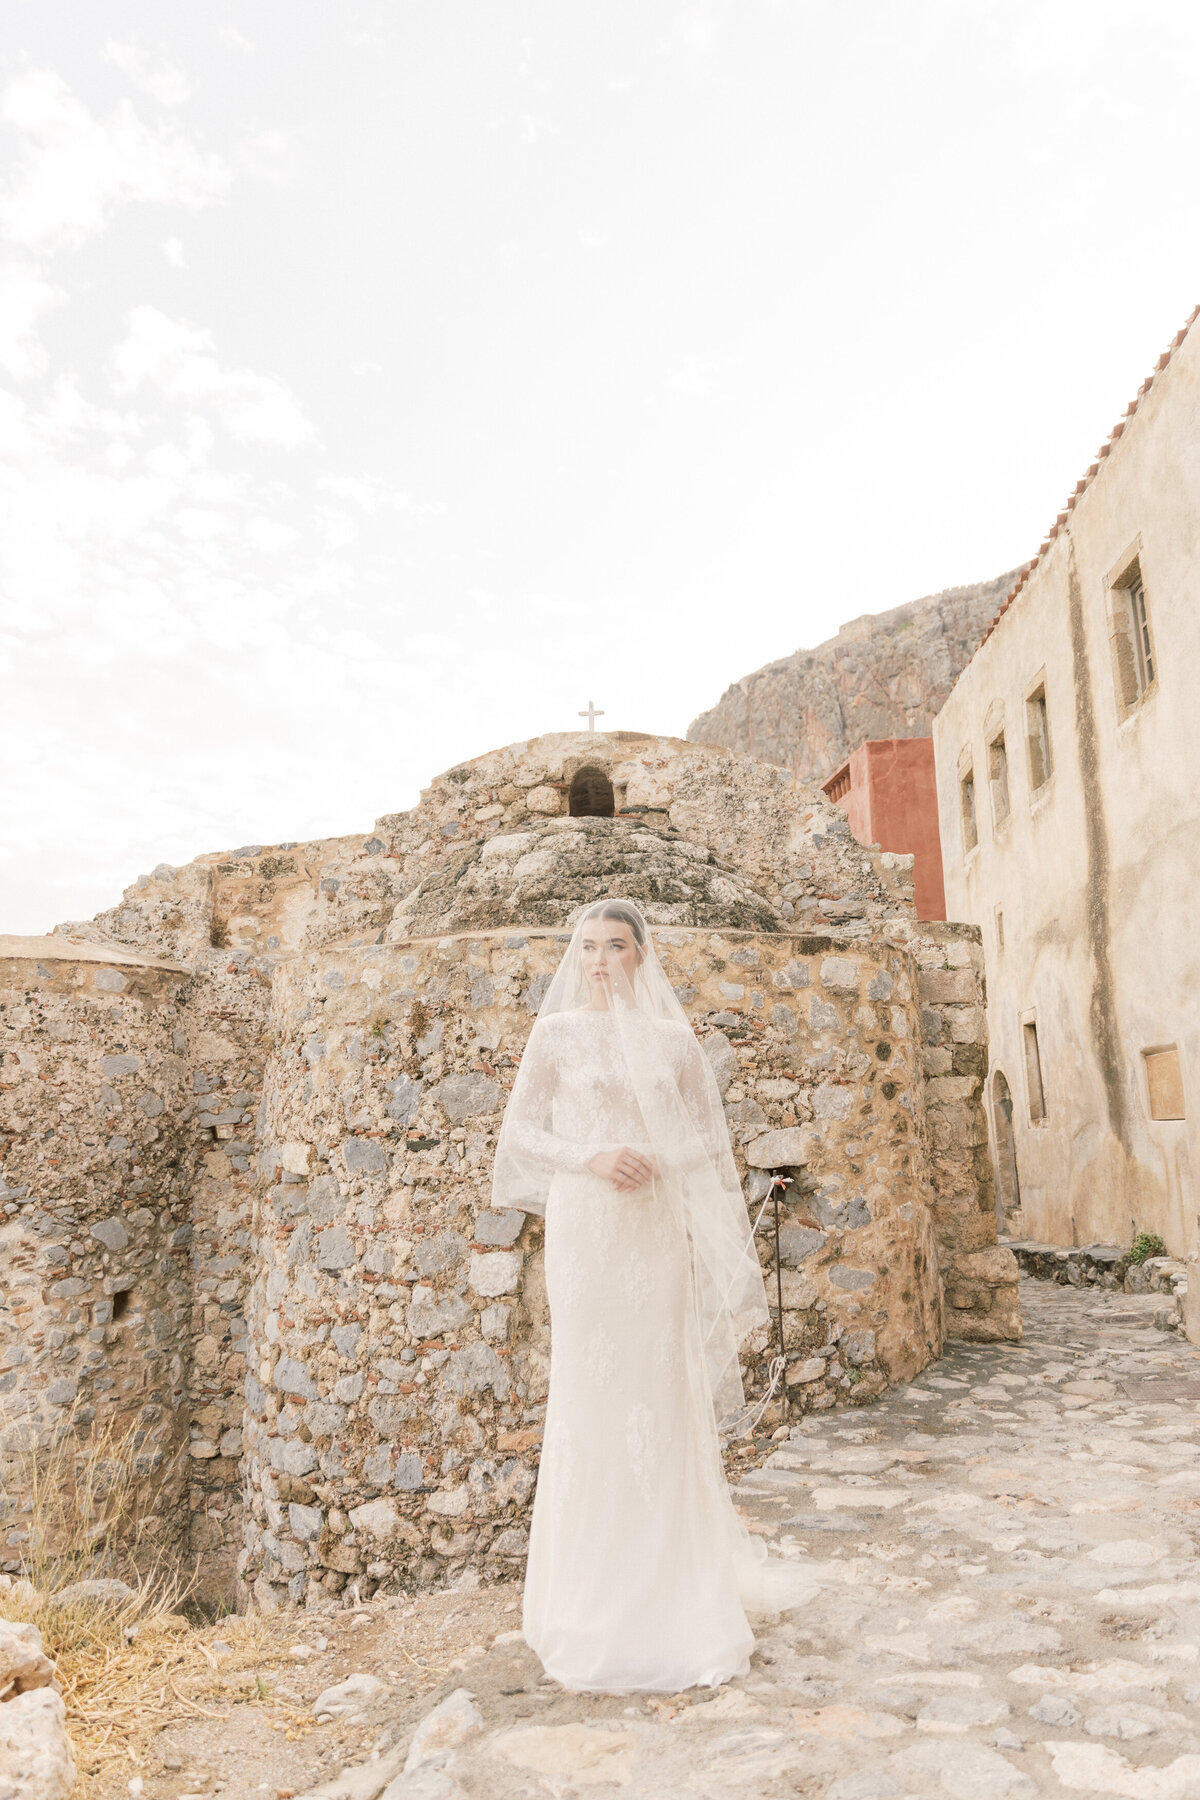 Bridal Portrait Editorial Photoshoot in Greece 9